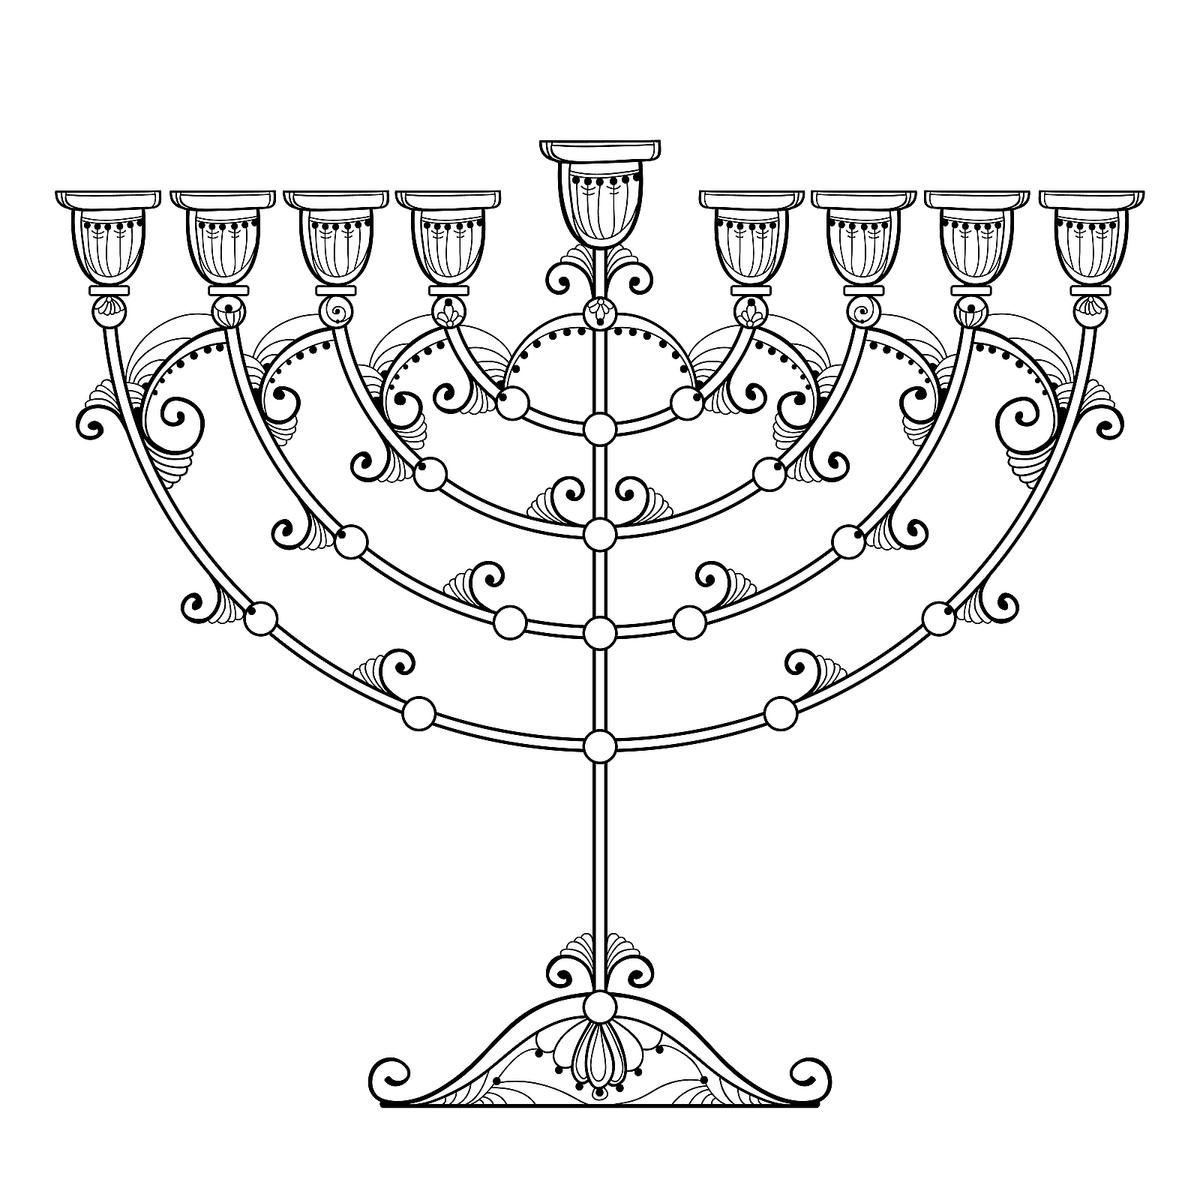 Hanukkah Coloring Pages For Kids Free Printable Coloring Pages